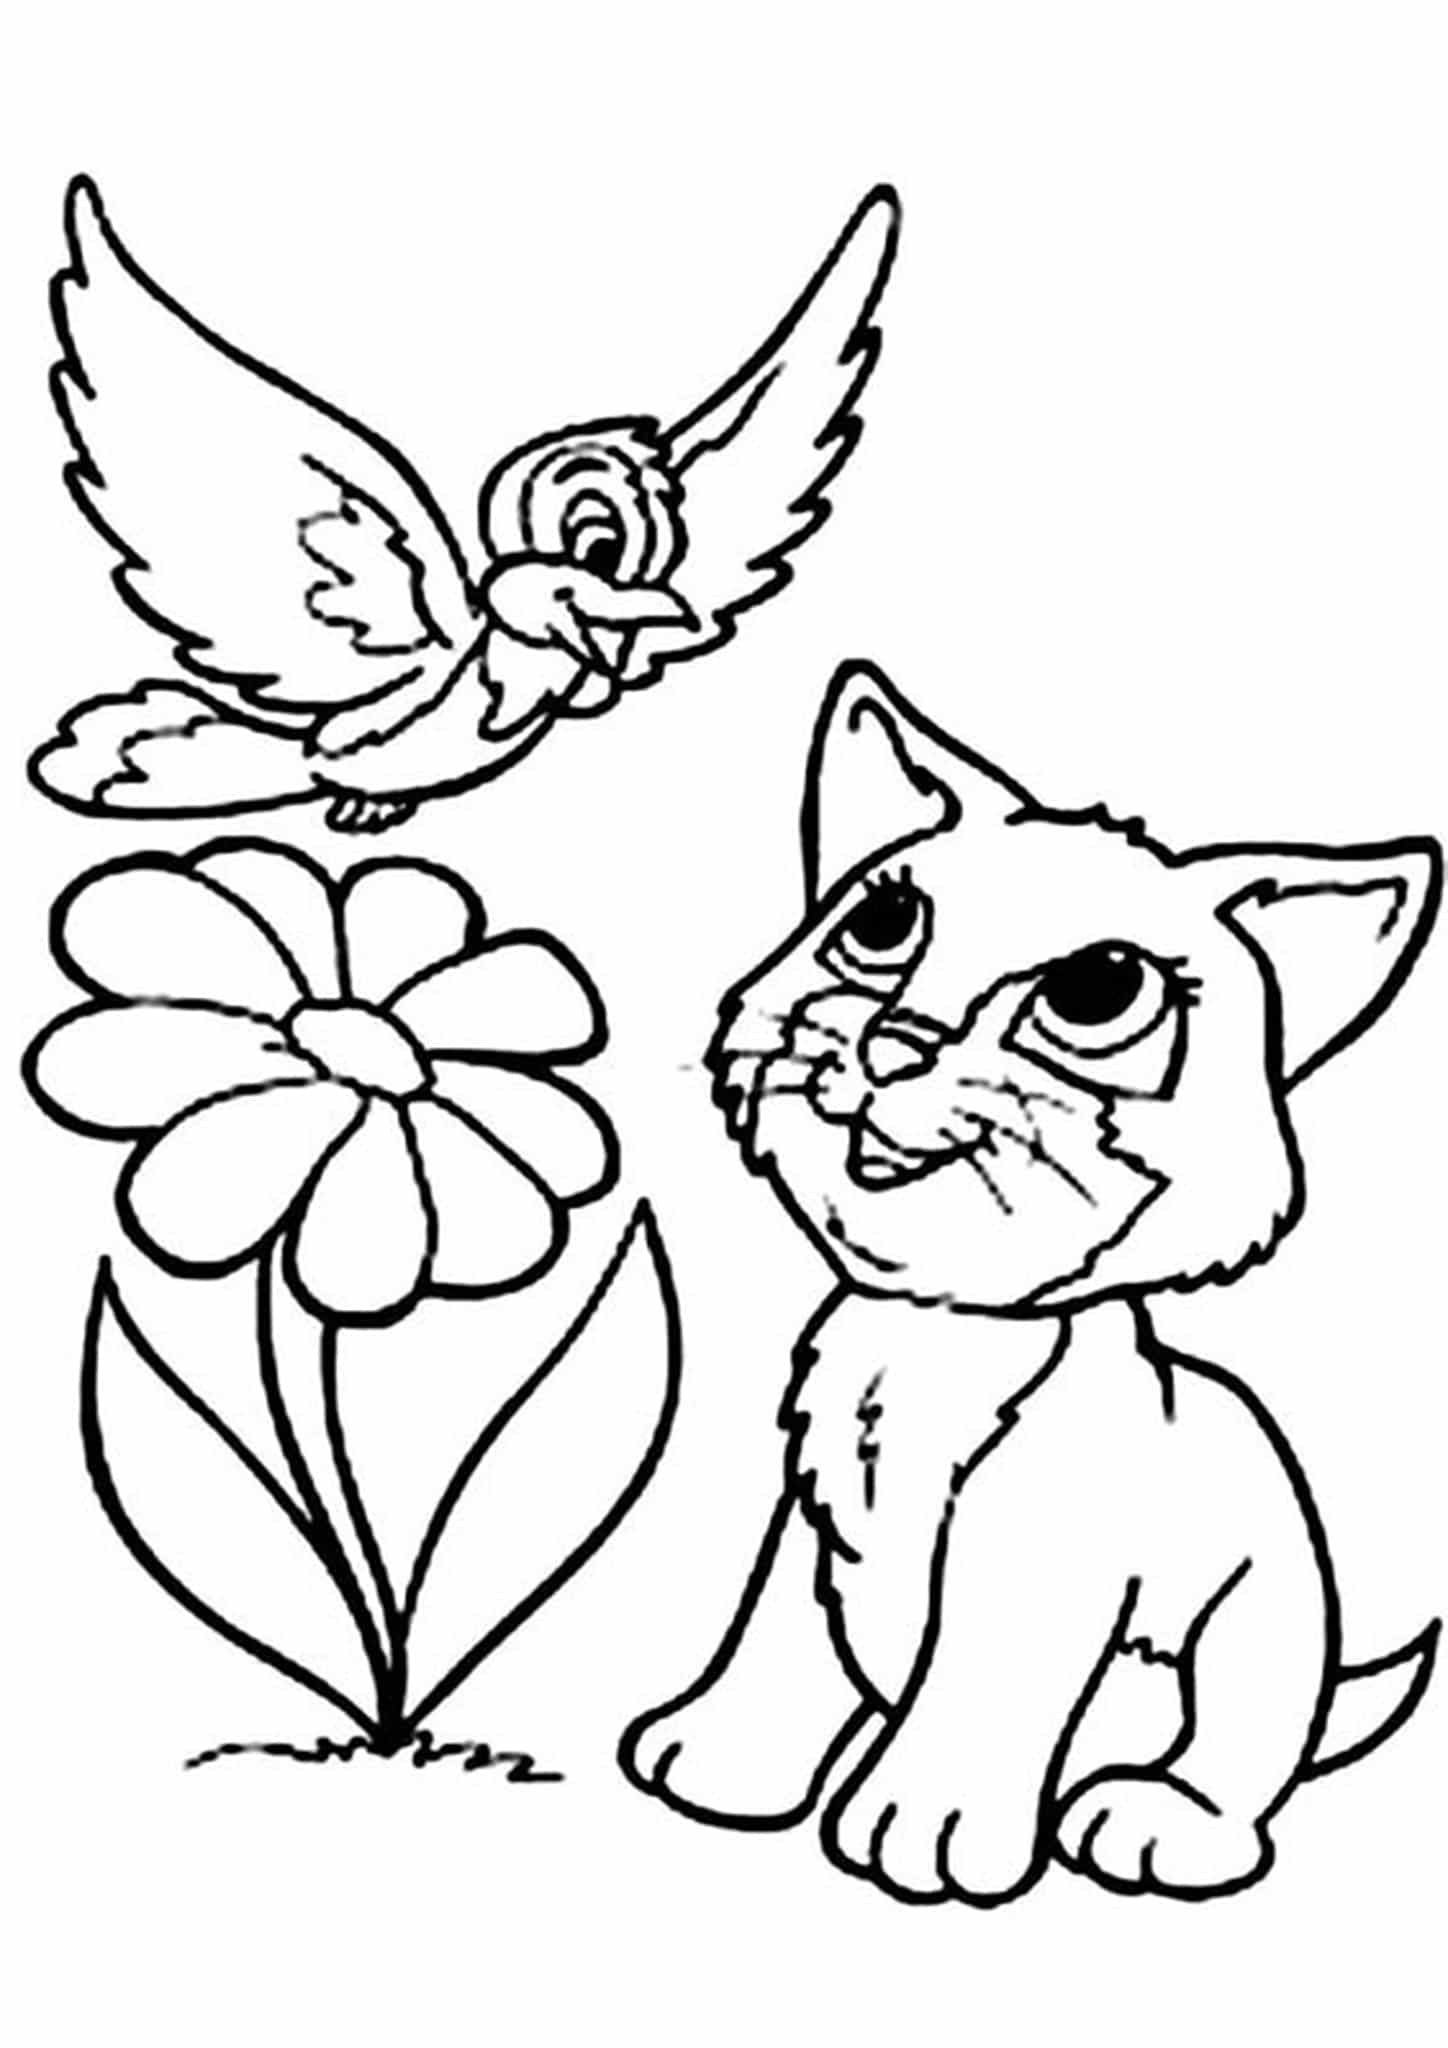 Baby Kitten Coloring Pages : kitten, coloring, pages, Print, Kitten, Coloring, Pages, Tulamama